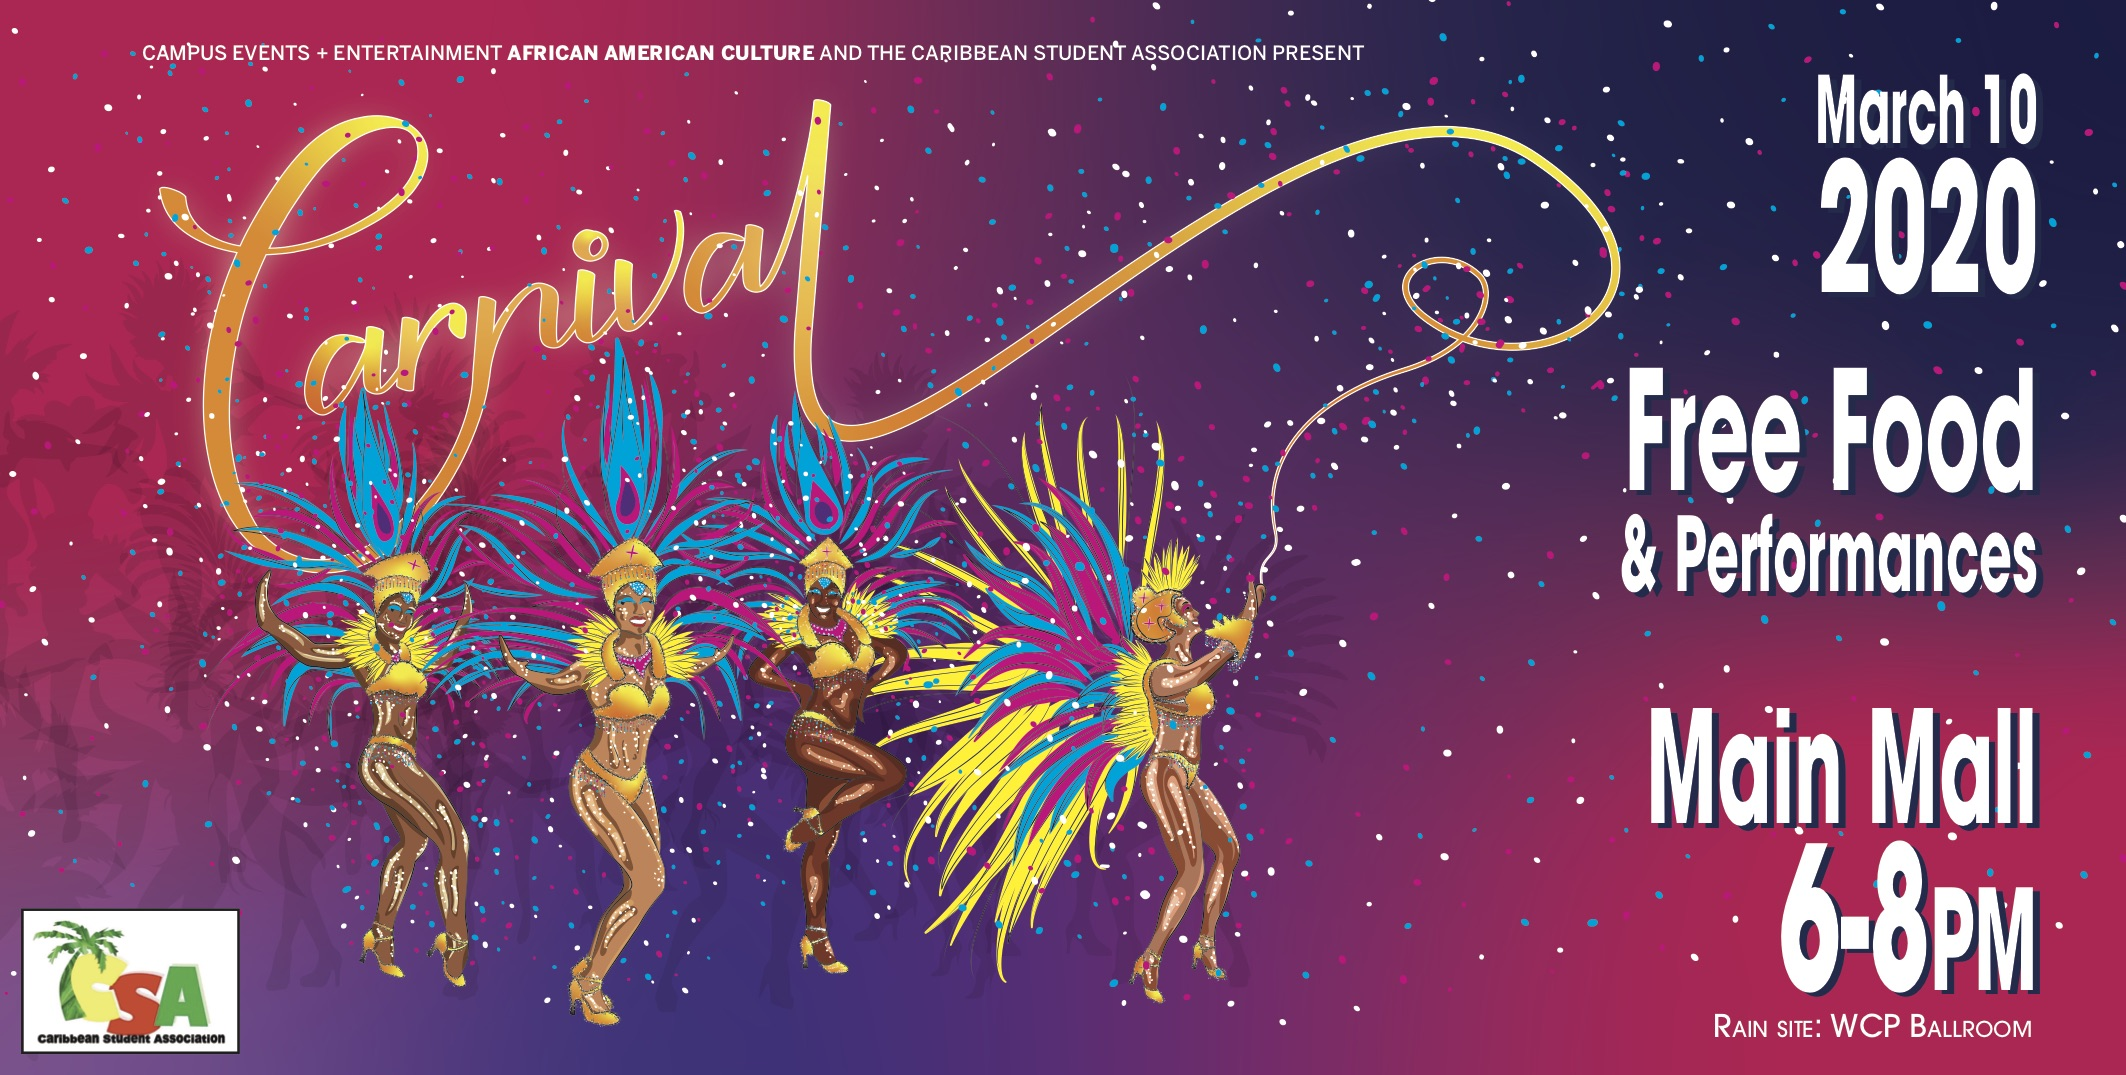 Carnival will be hosted on Main mall on Tuesday March 10th 6-8 pm. Food Prizes and performances